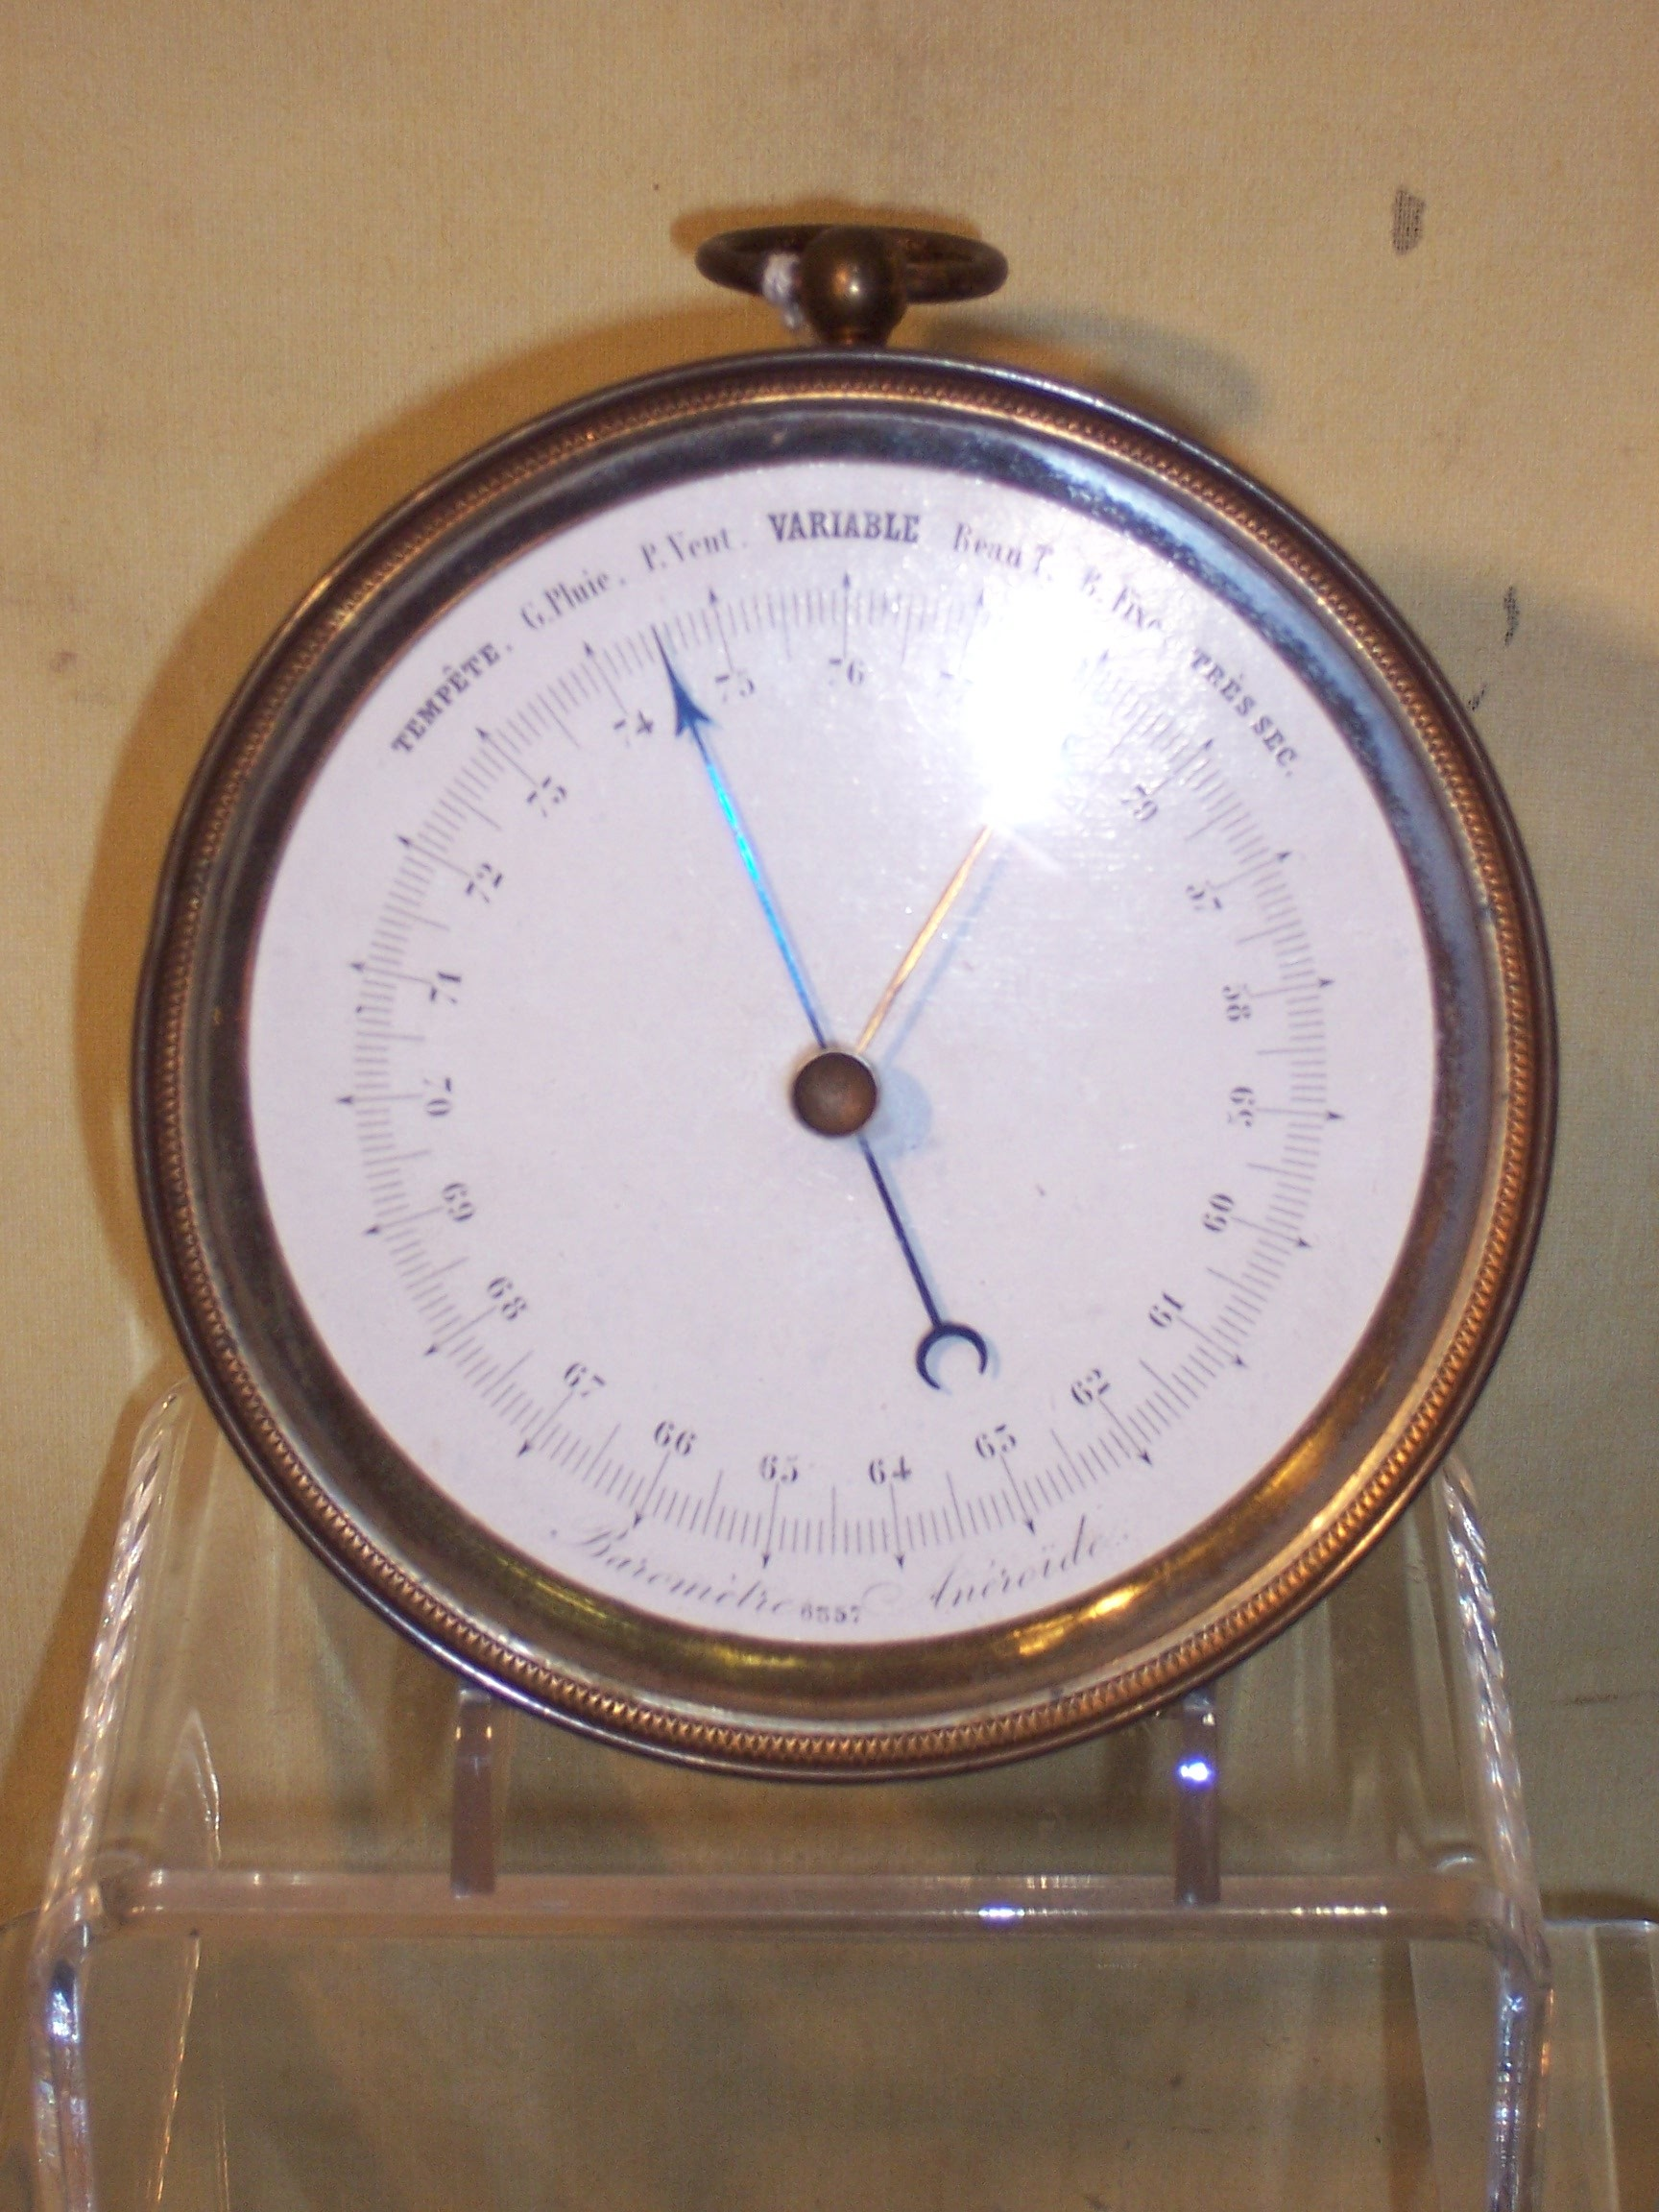 A452 Aneroid Barometer